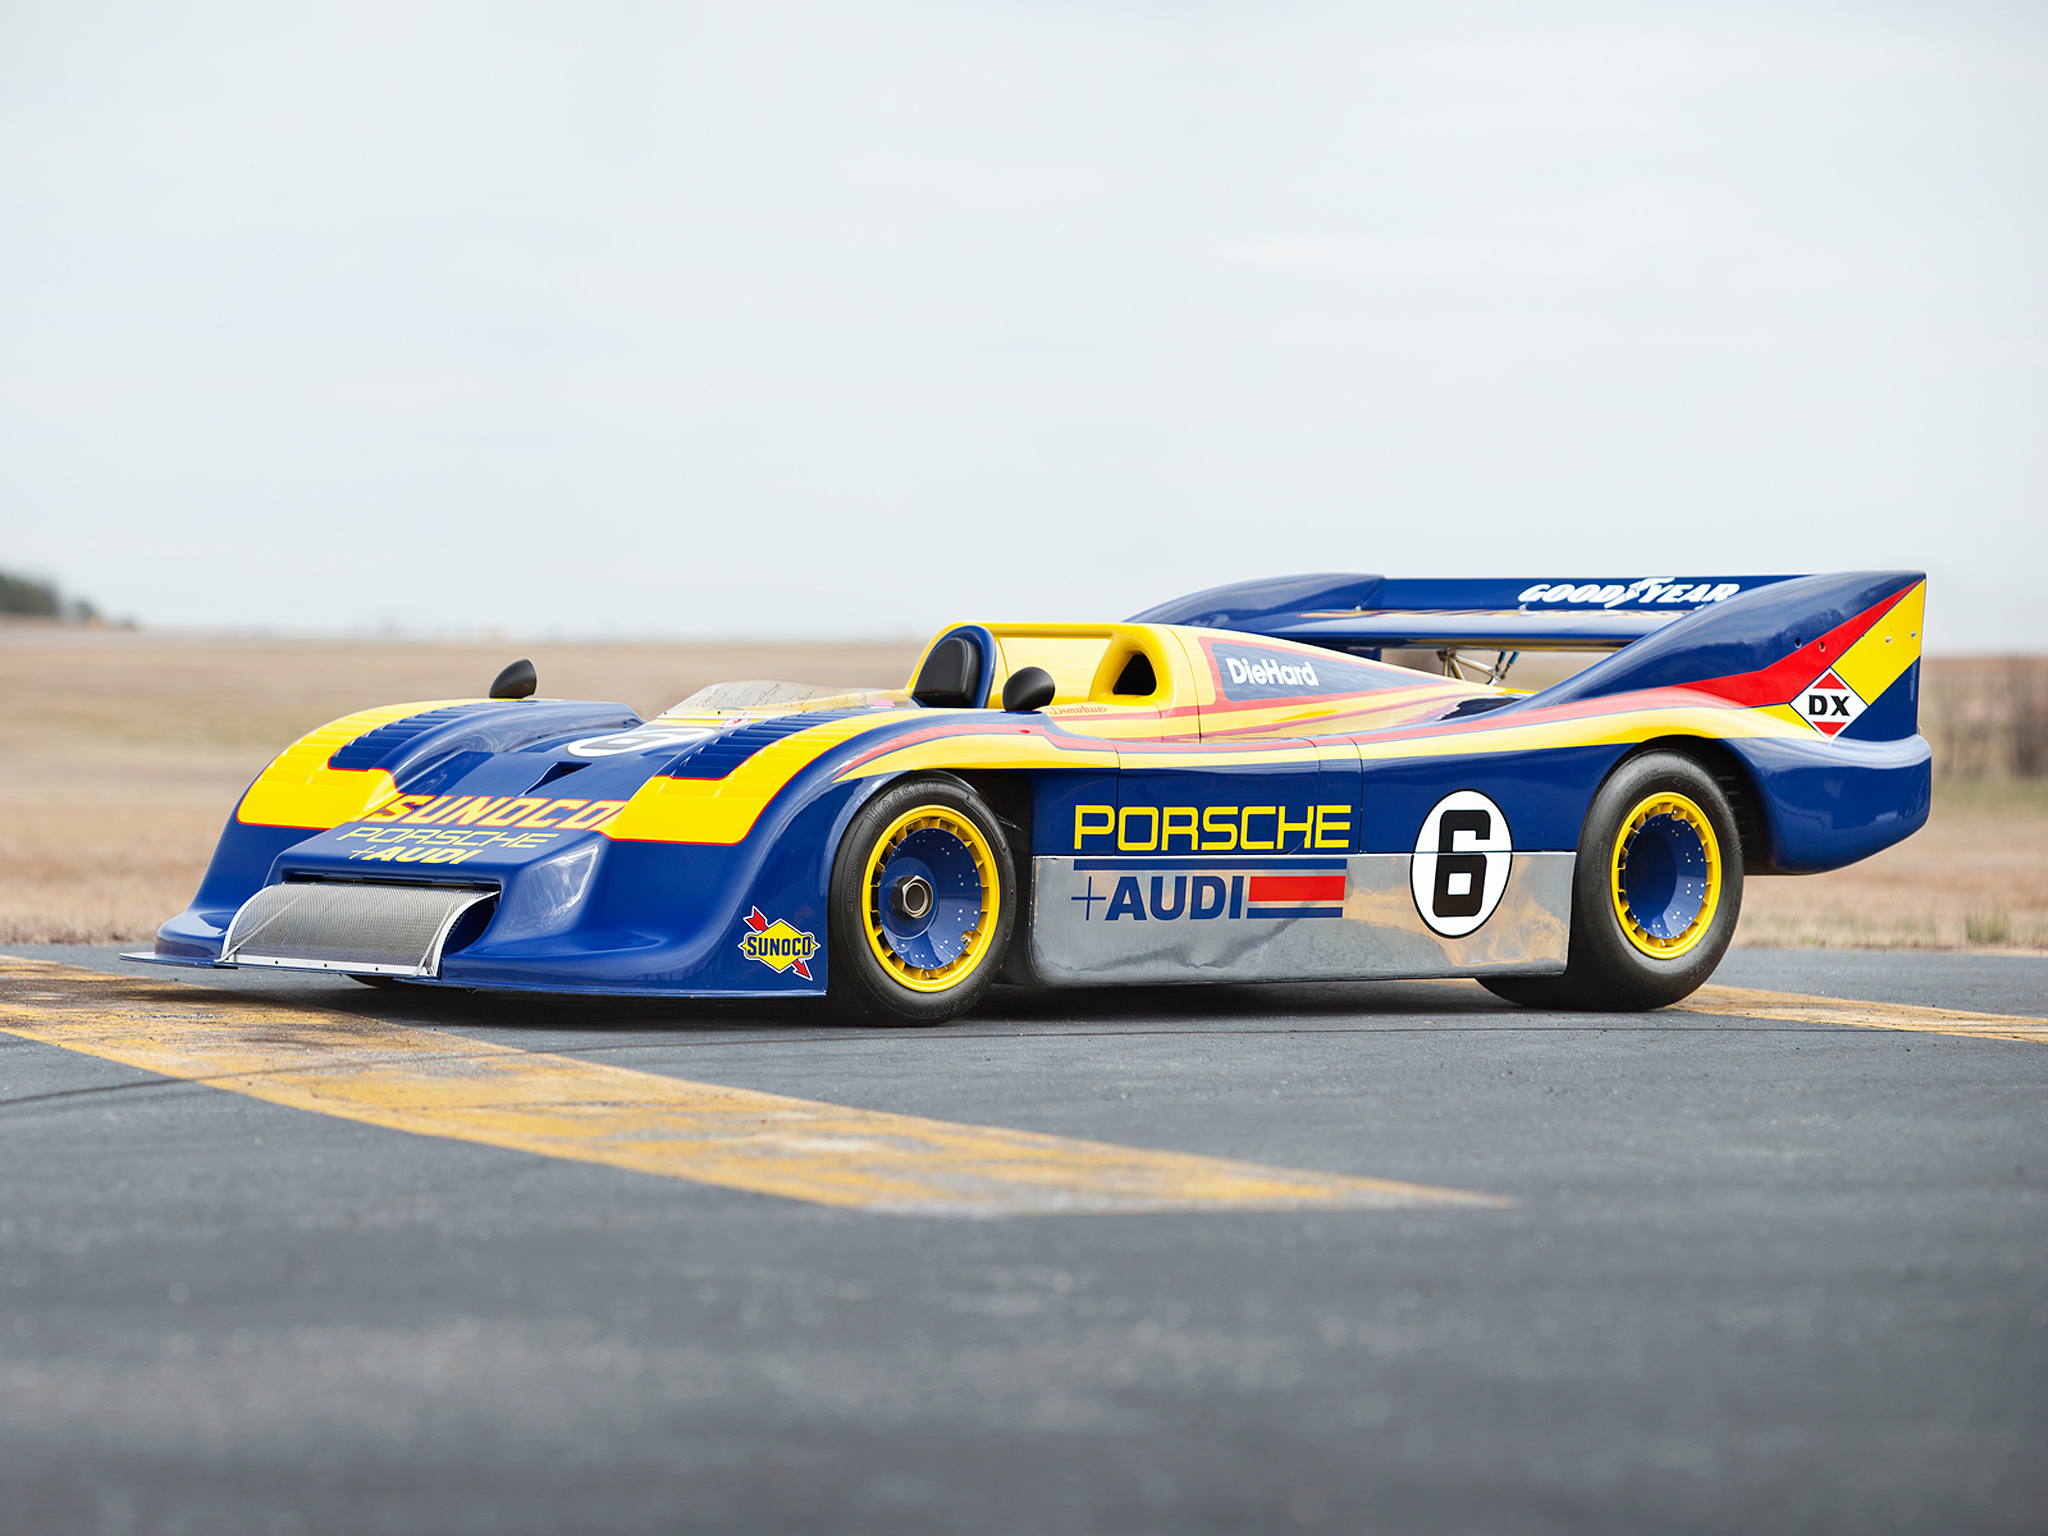 Porsche 917-30 Can-Am, la plus puissante